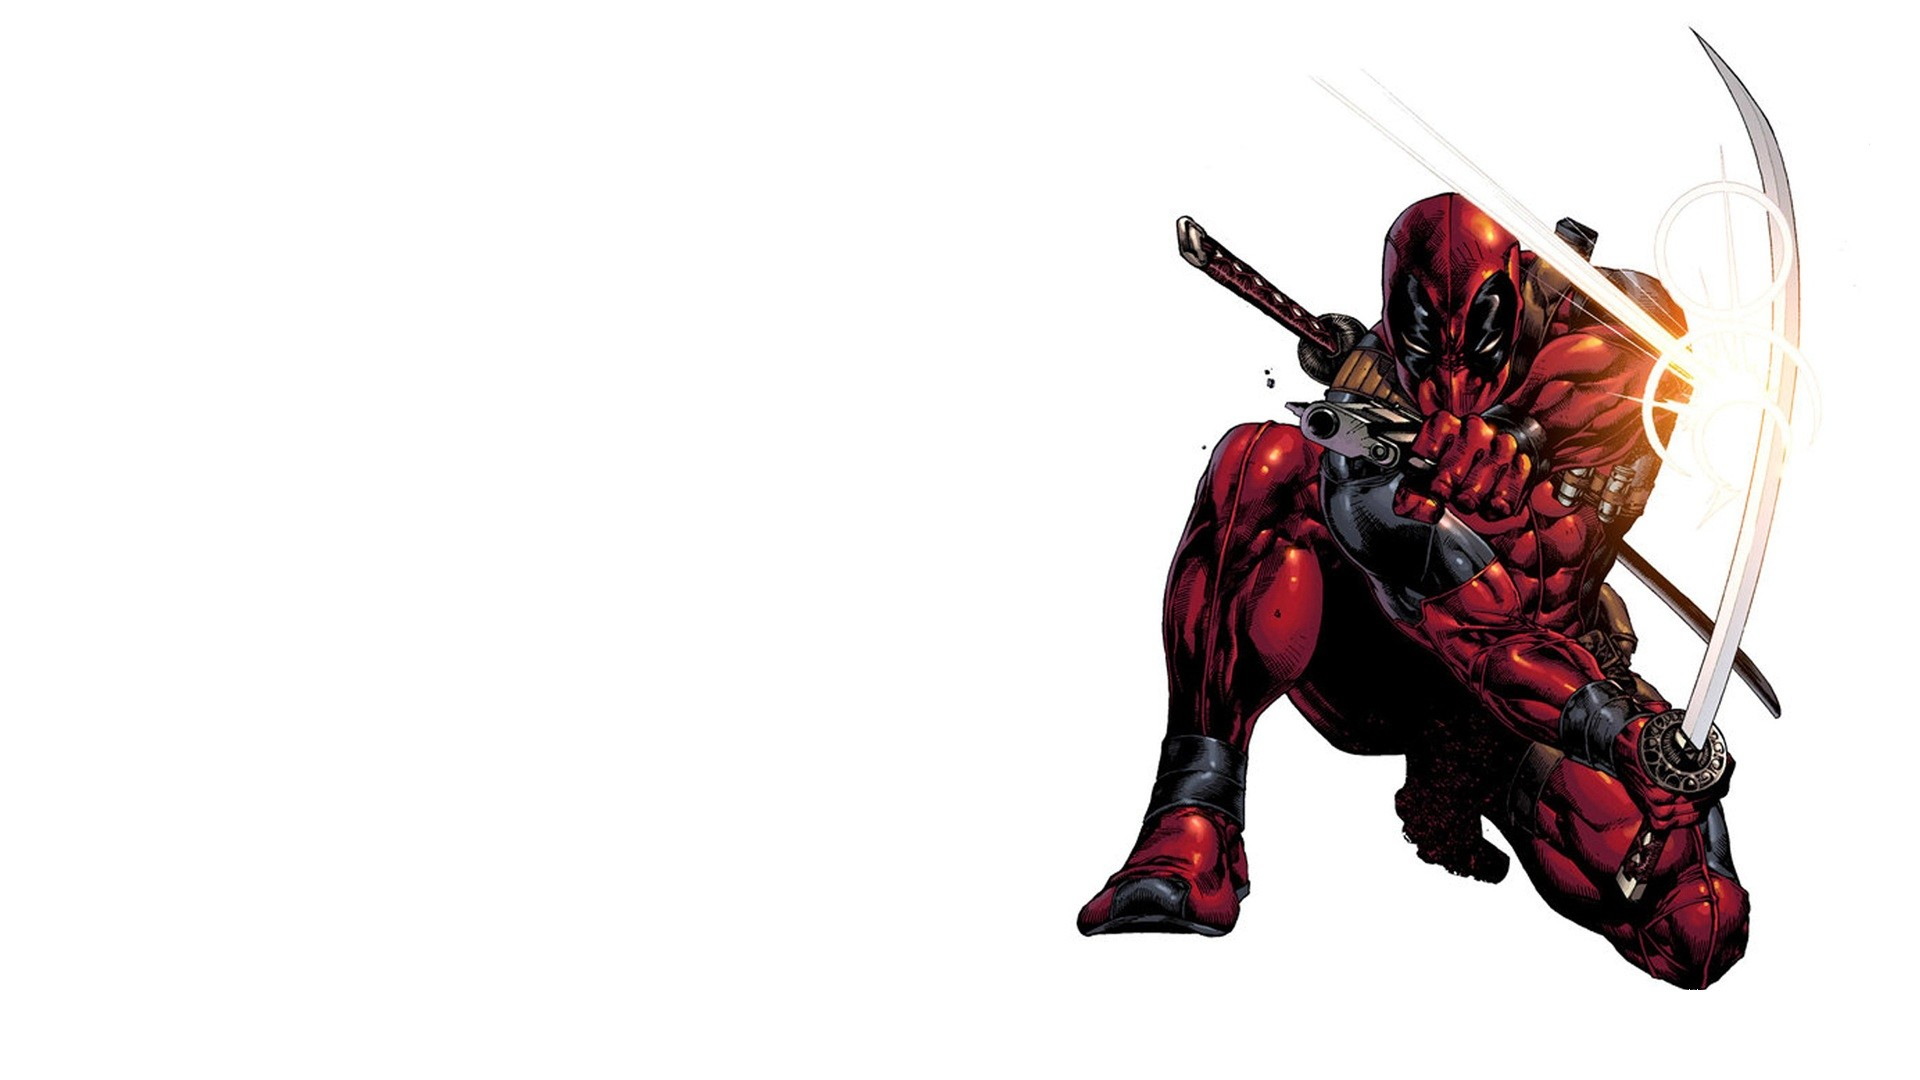 my collection of deadpool wallpapers.